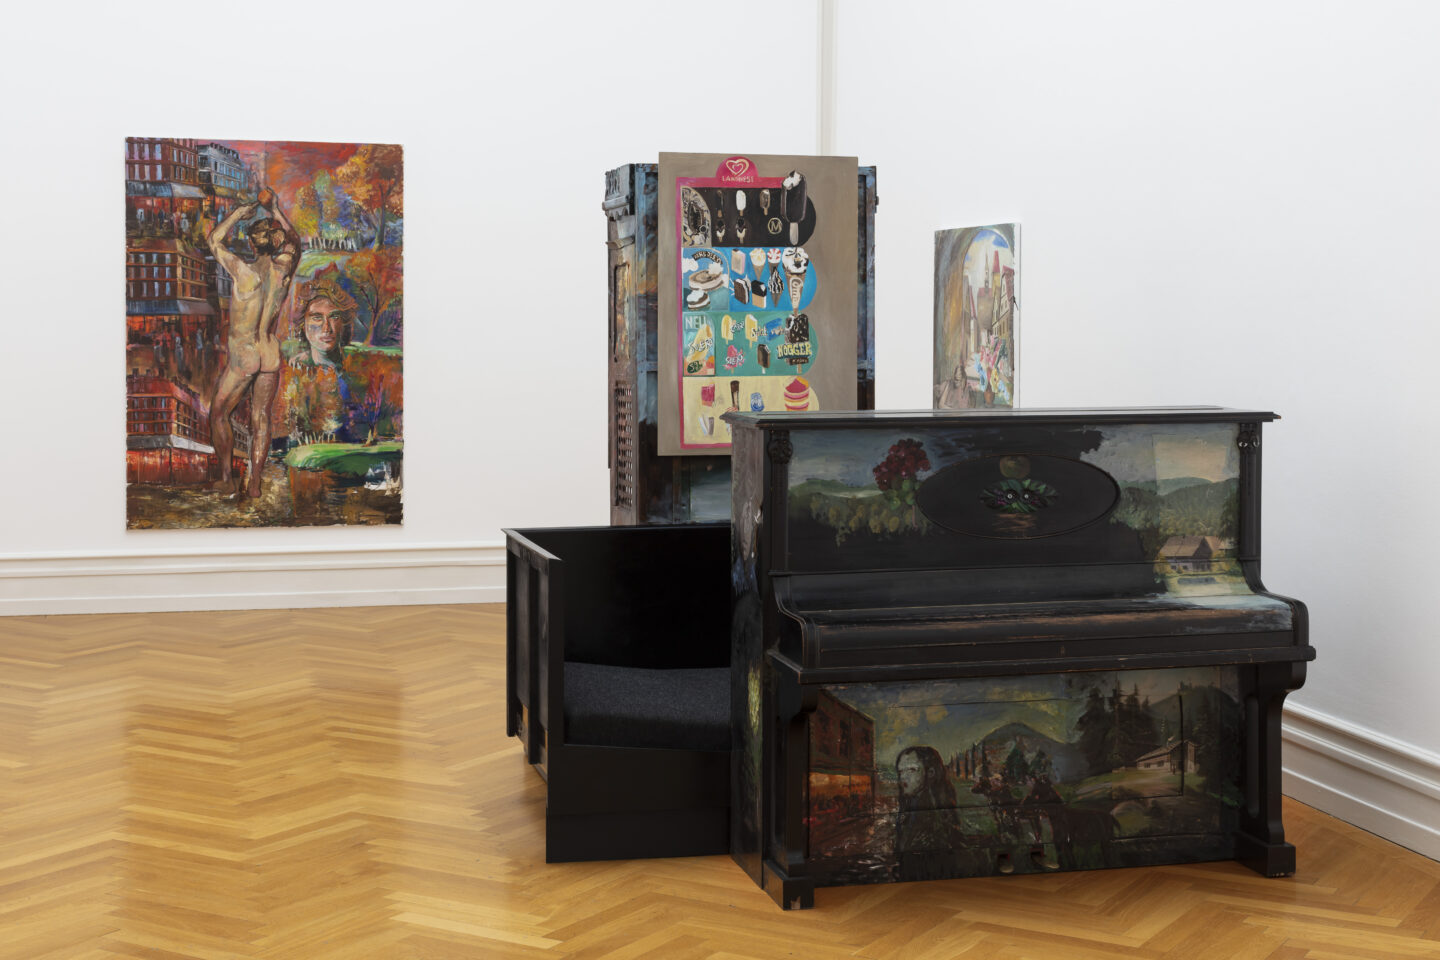 Exhibition View Amelie von Wulffen Soloshow at Kunsthalle Bern, Bern / Photo: Gunnar Meier / Courtesy: the artist